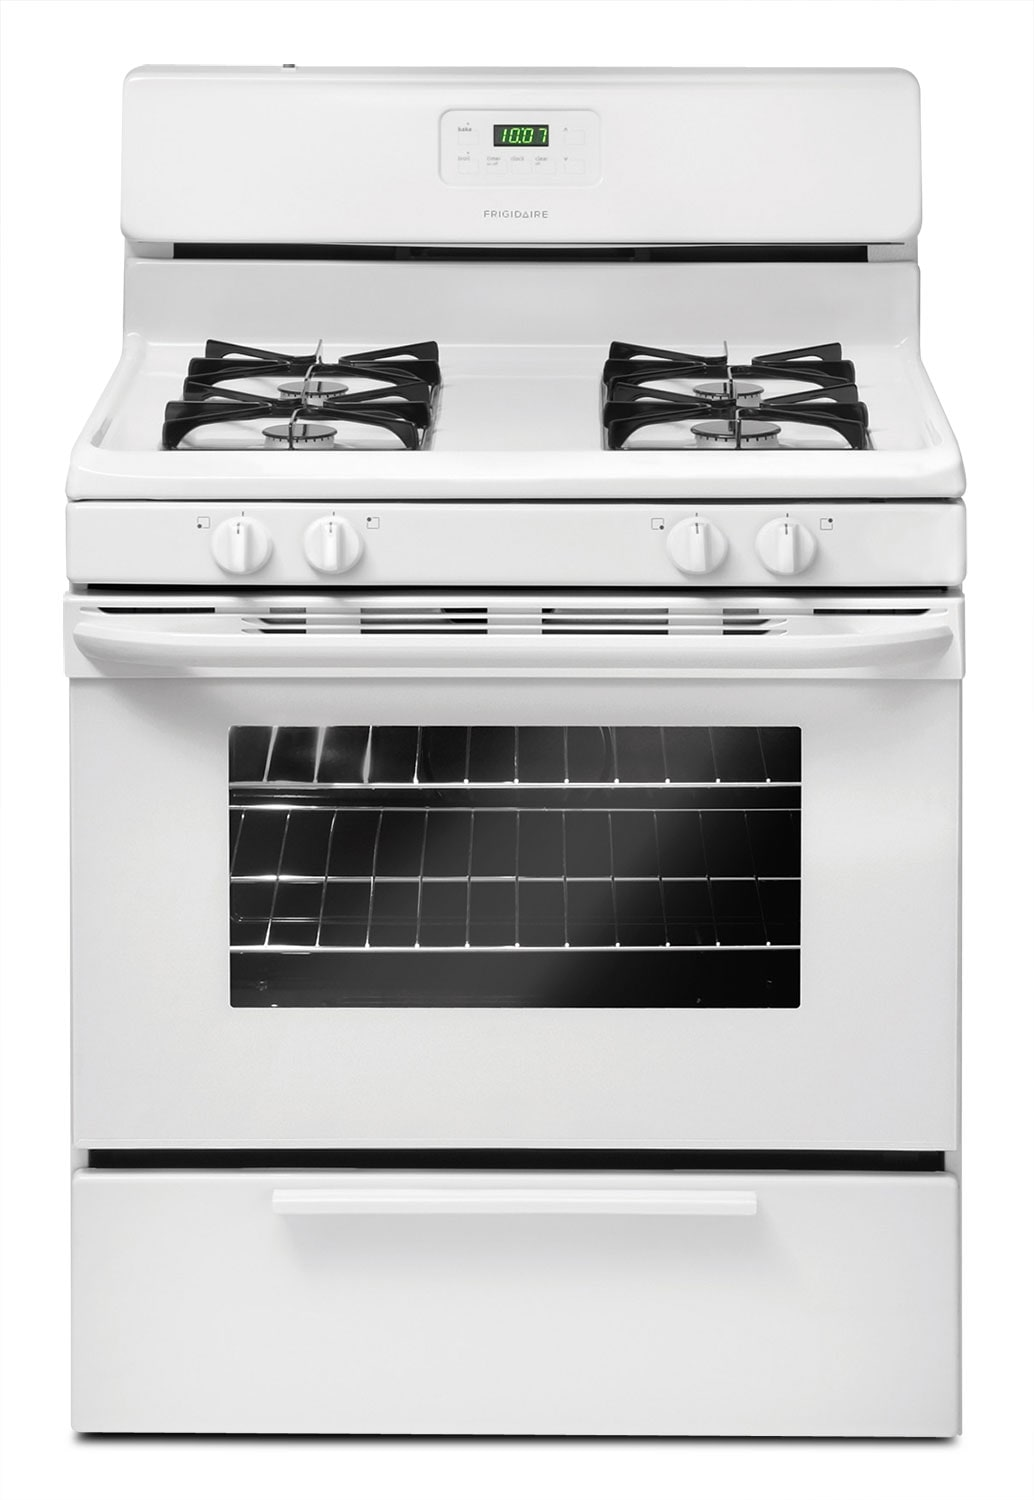 Frigidaire White Freestanding Gas Range (4.2 Cu. Ft.) - CFGF3017LW